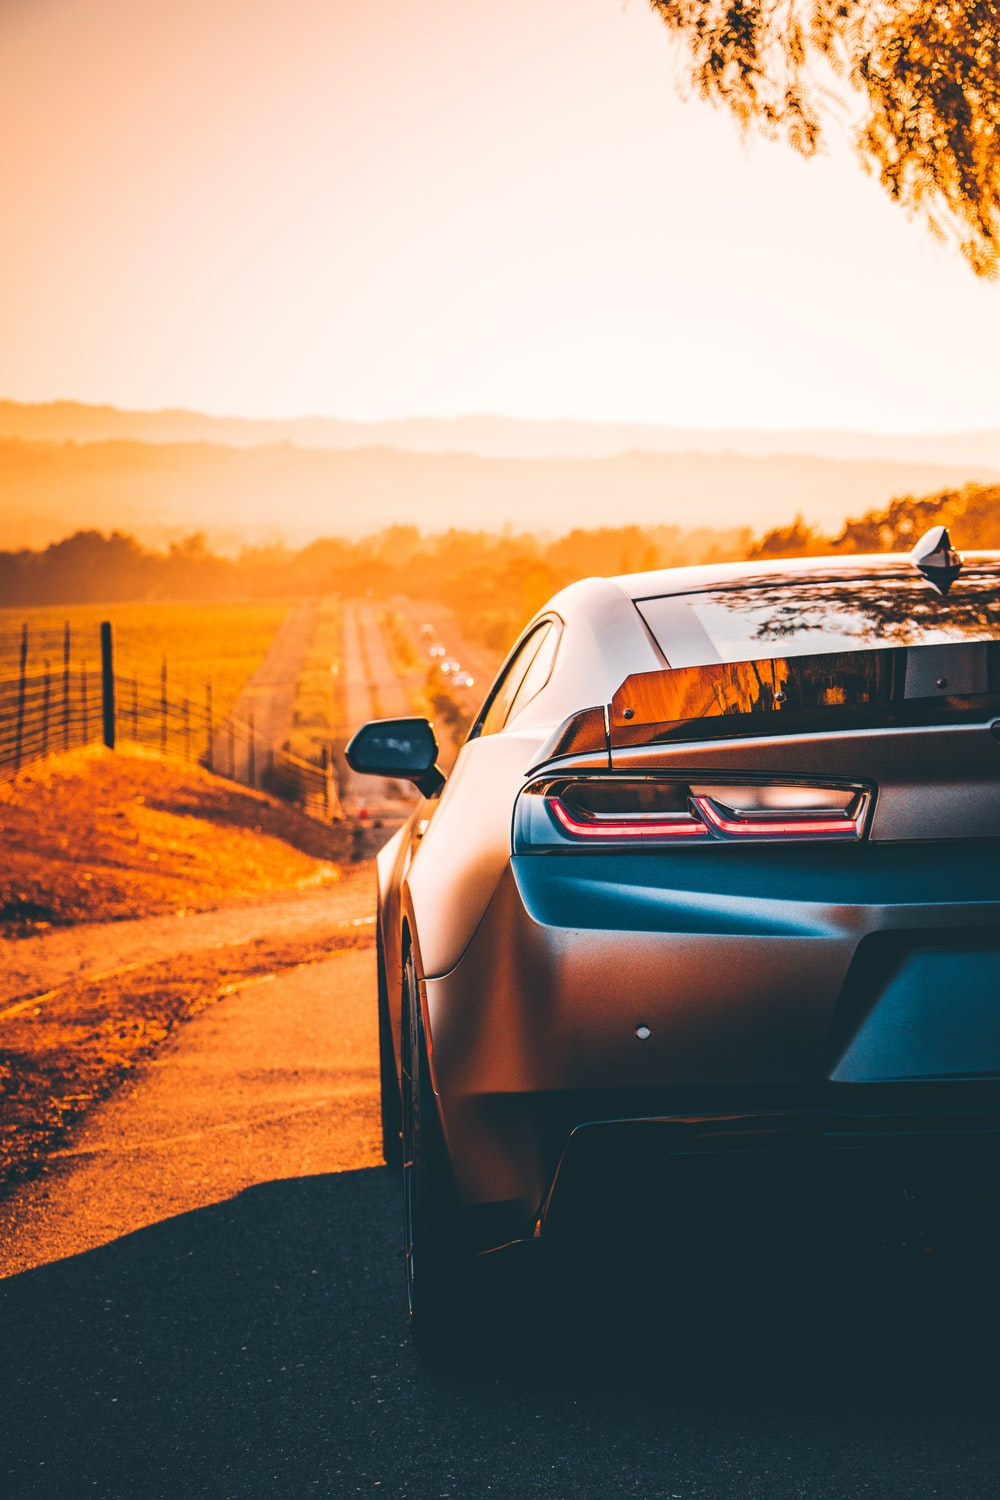 car on road during golden hour